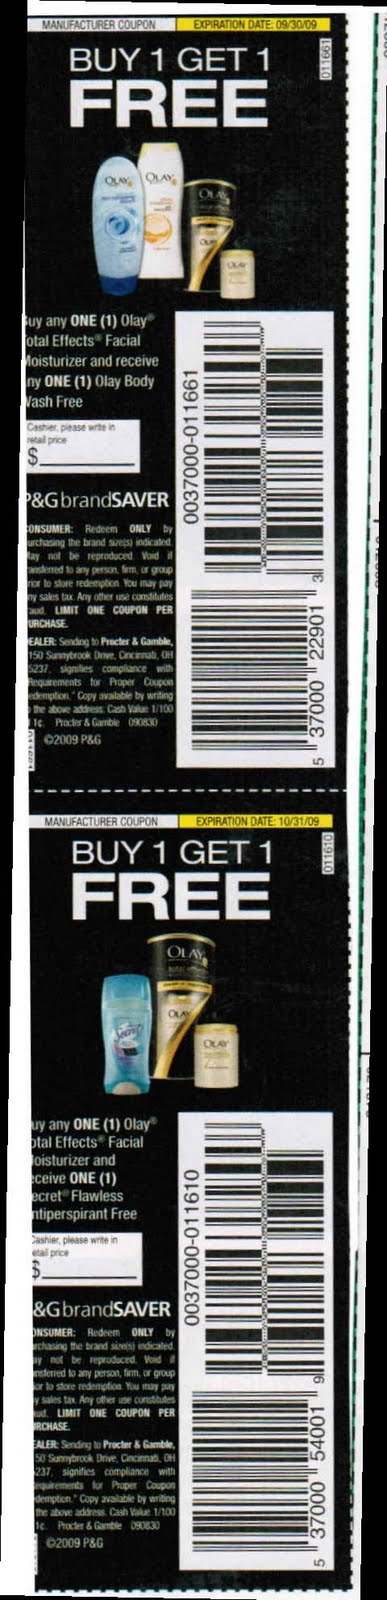 Free Coupons Online December 2009